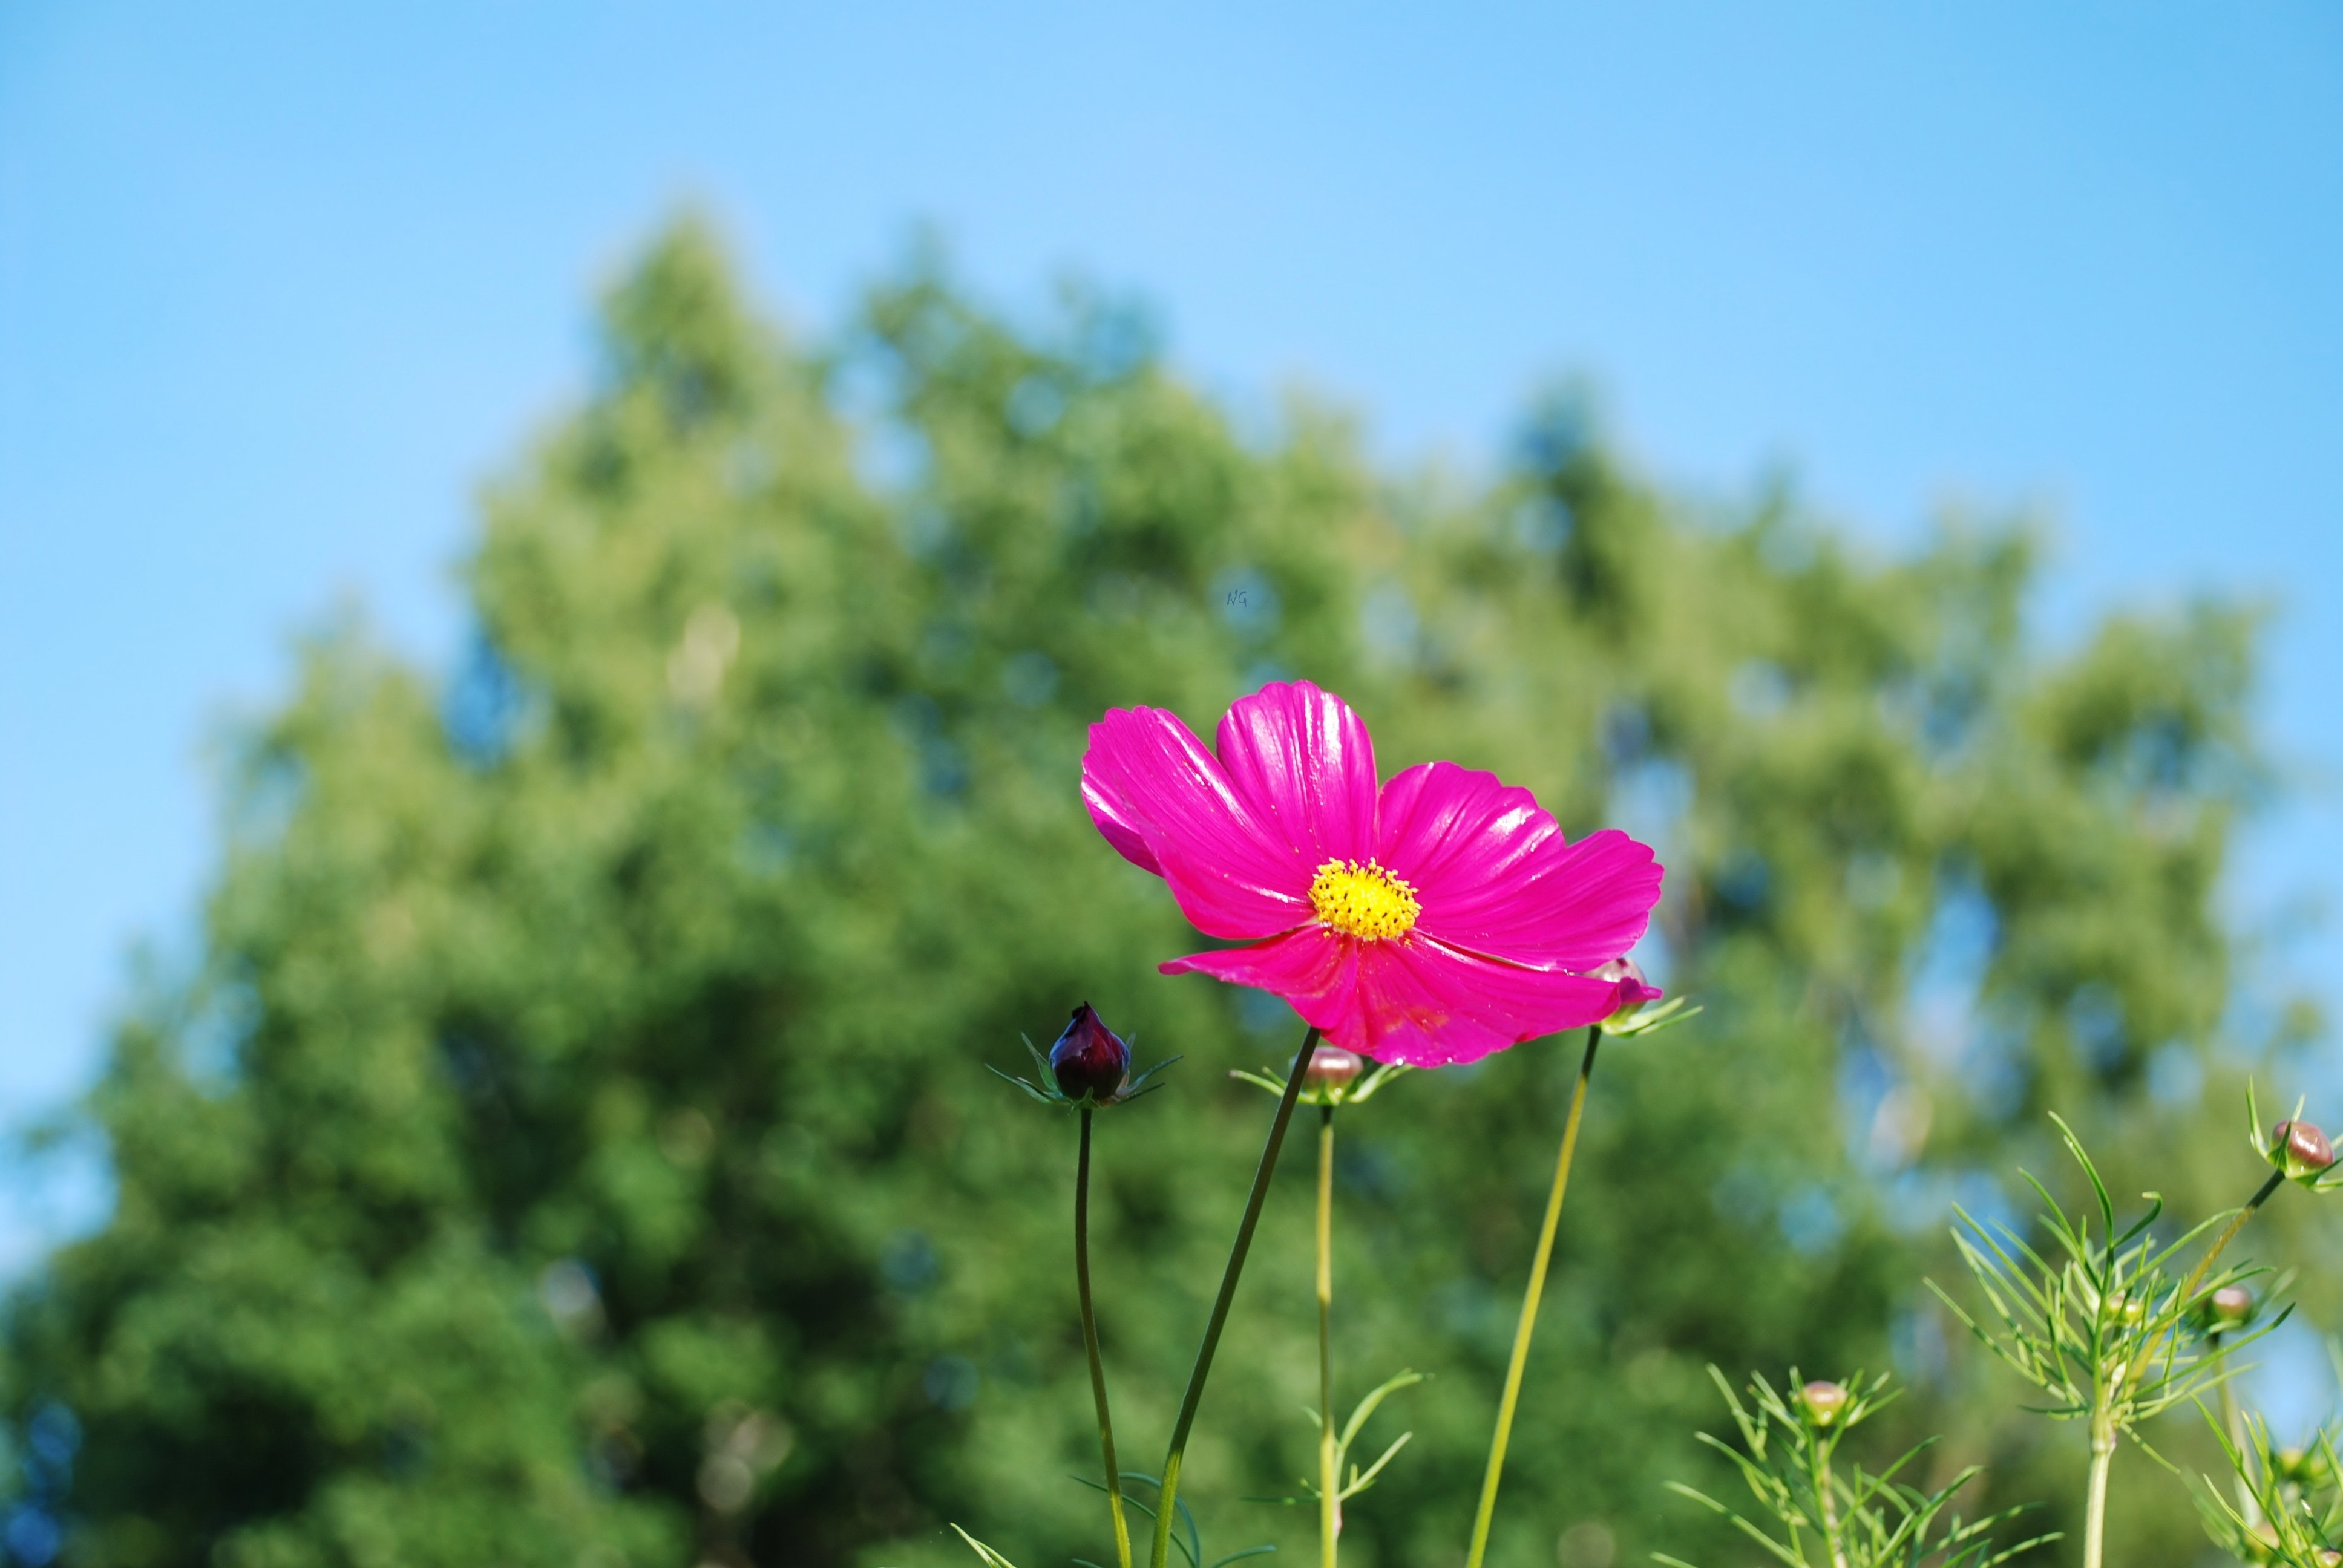 Pink and Yellow Flower, Macro, Plant, Nature, Flower, HQ Photo